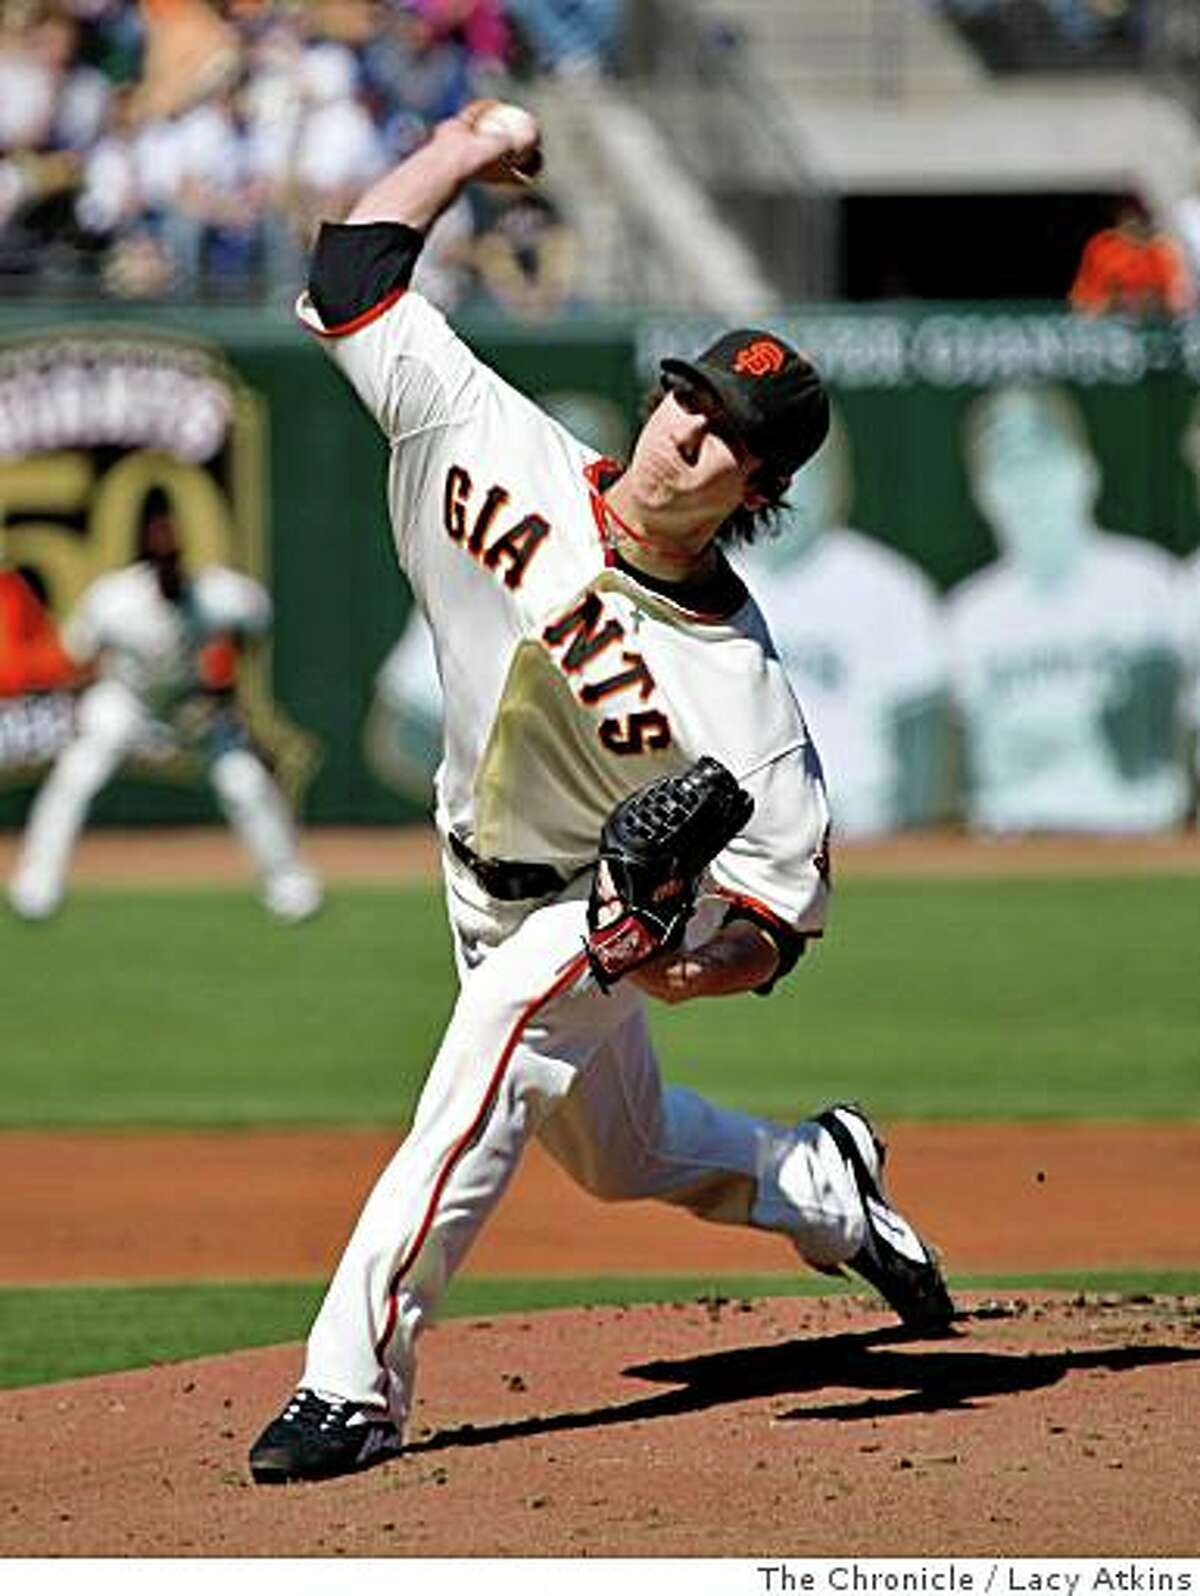 Giants pitcher Tim Lincecum pitches against the Chicago Cubs Thursday July 3, 2008, in San Francisco, Calif.Photo by Lacy Atkins /The Chronicle